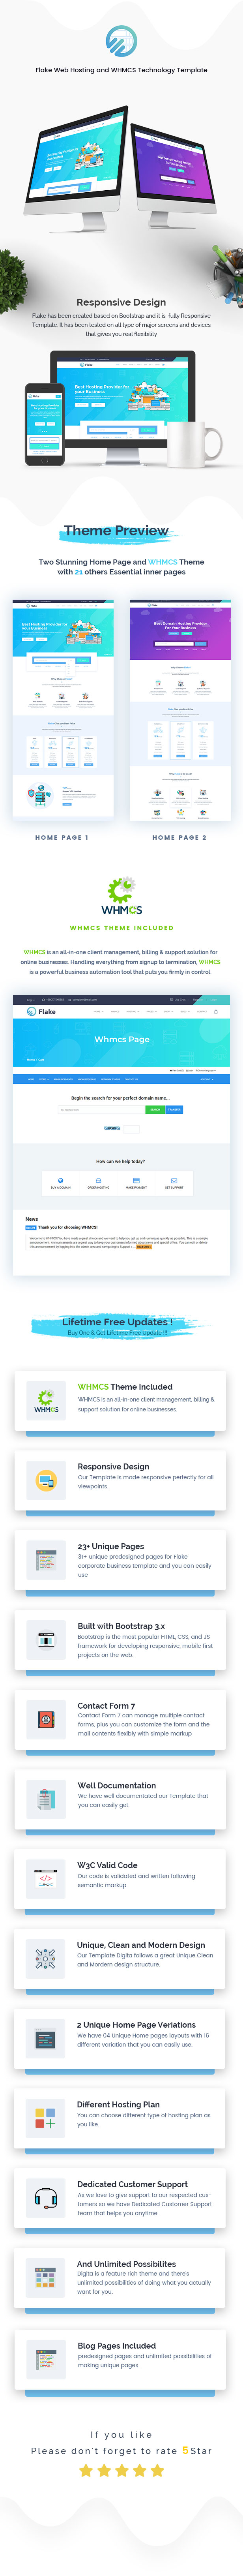 Flake Web Hosting and WHMCS Technology Template, Gobase64